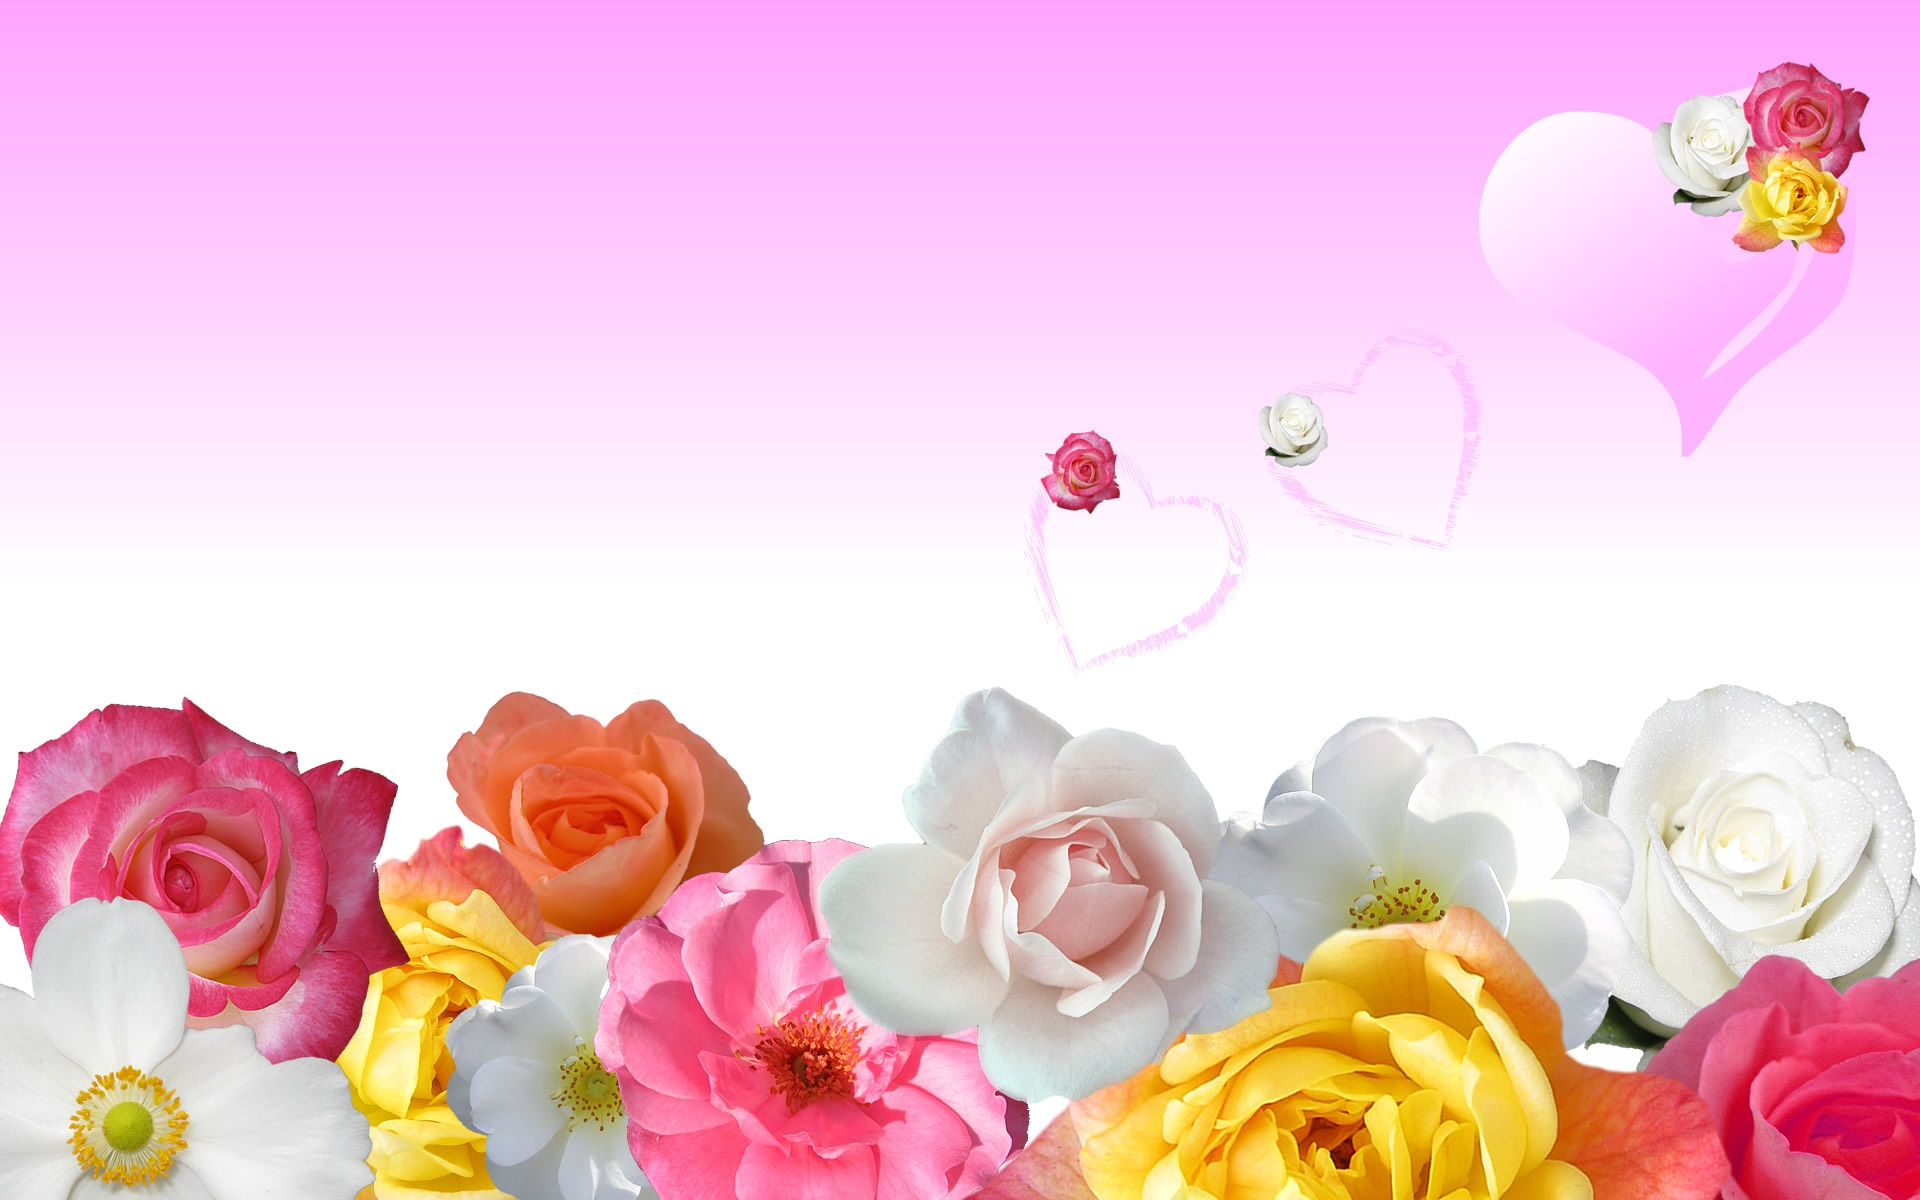 Roses & Love Hearts Wallpapers in jpg format for free download